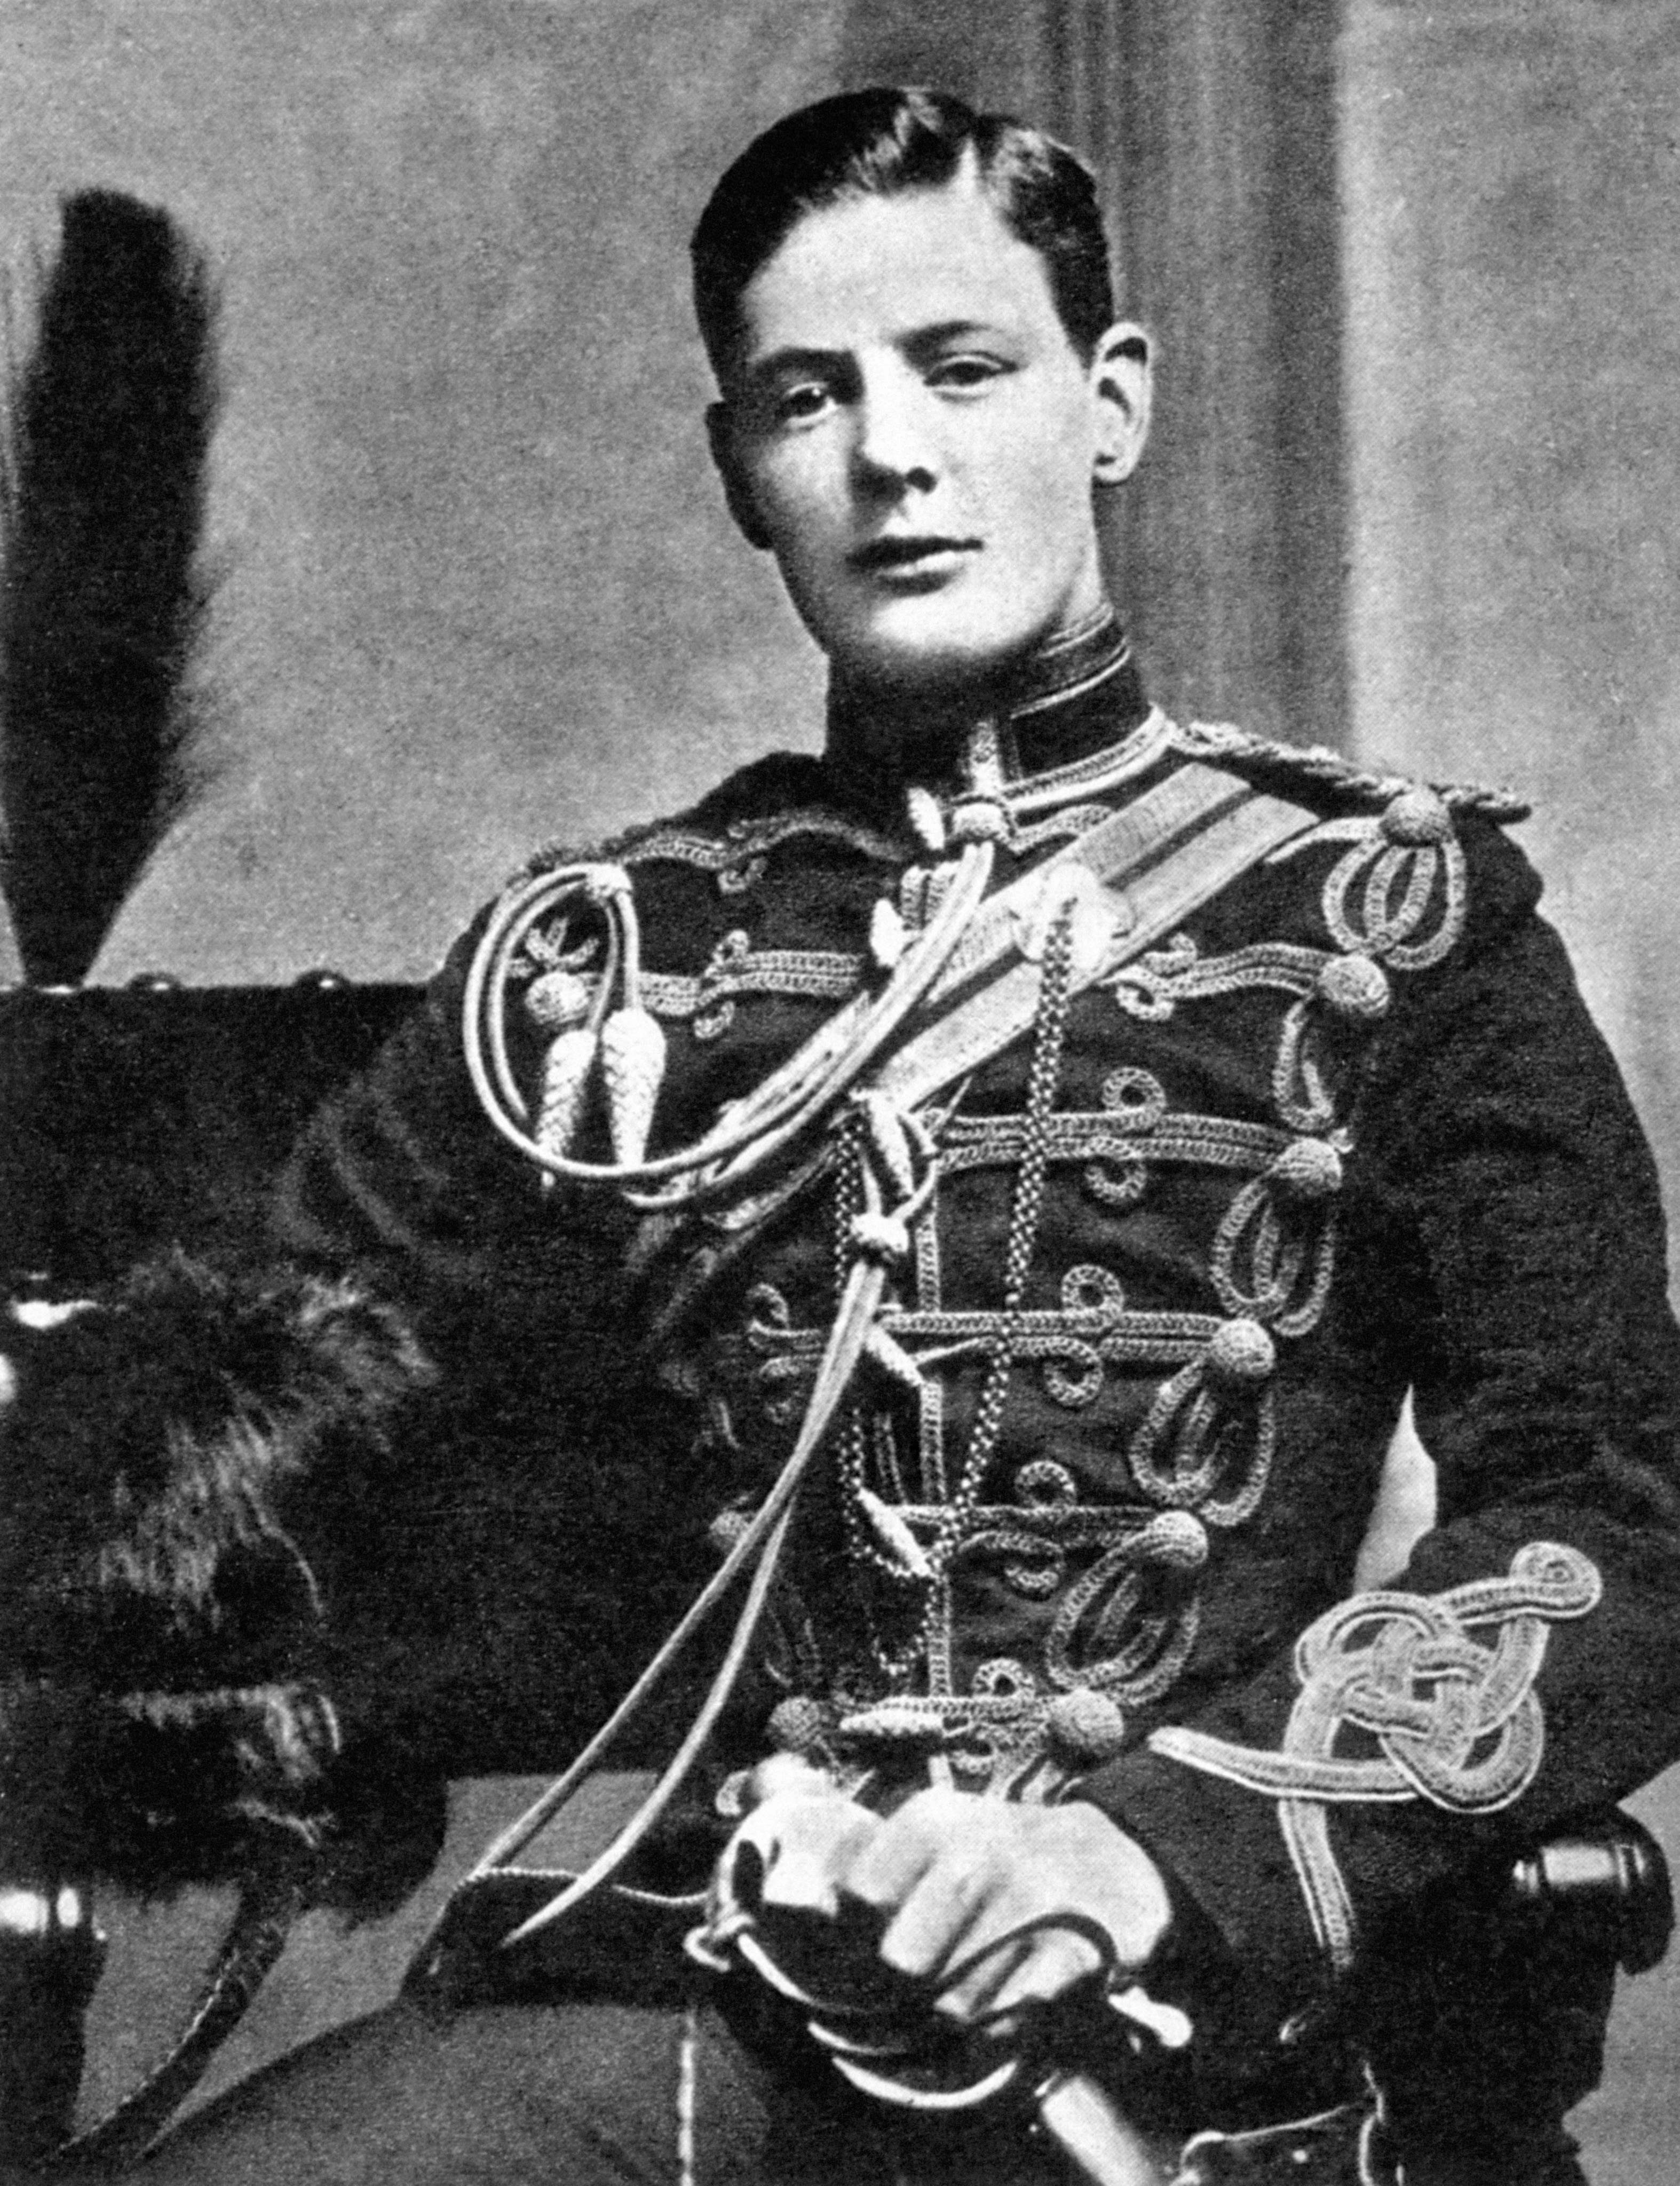 Winston Churchill as a Cornet (Second Lieutenant) in the 4th Queen's Own Hussars.